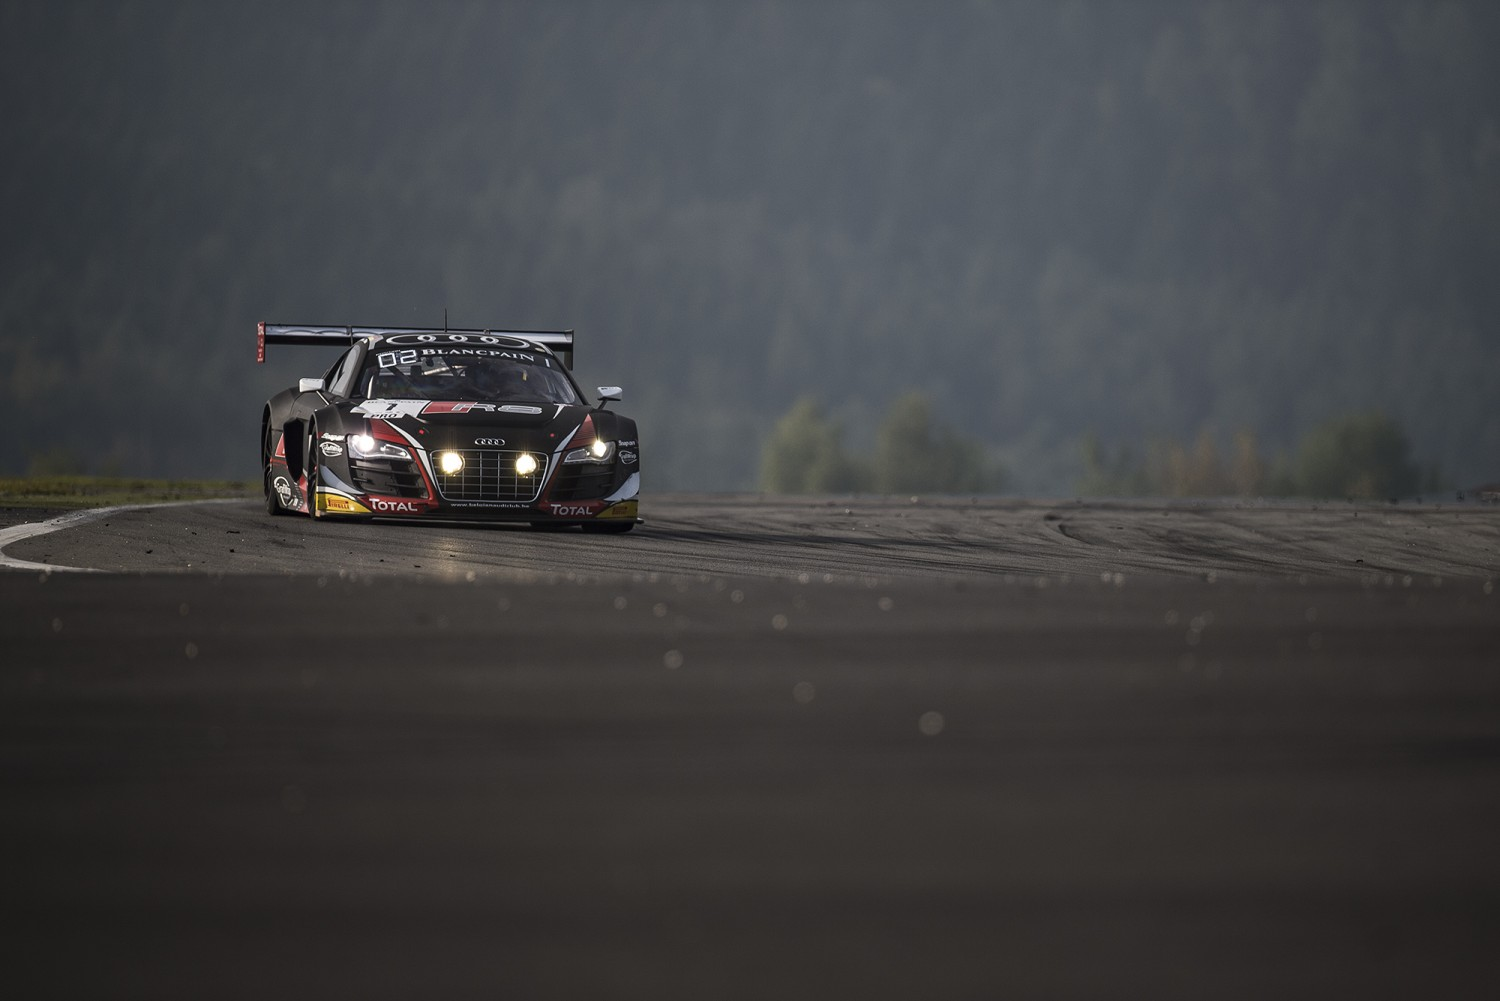 Pro Cup leader Vanthoor on top in Pre-Qualifying Session